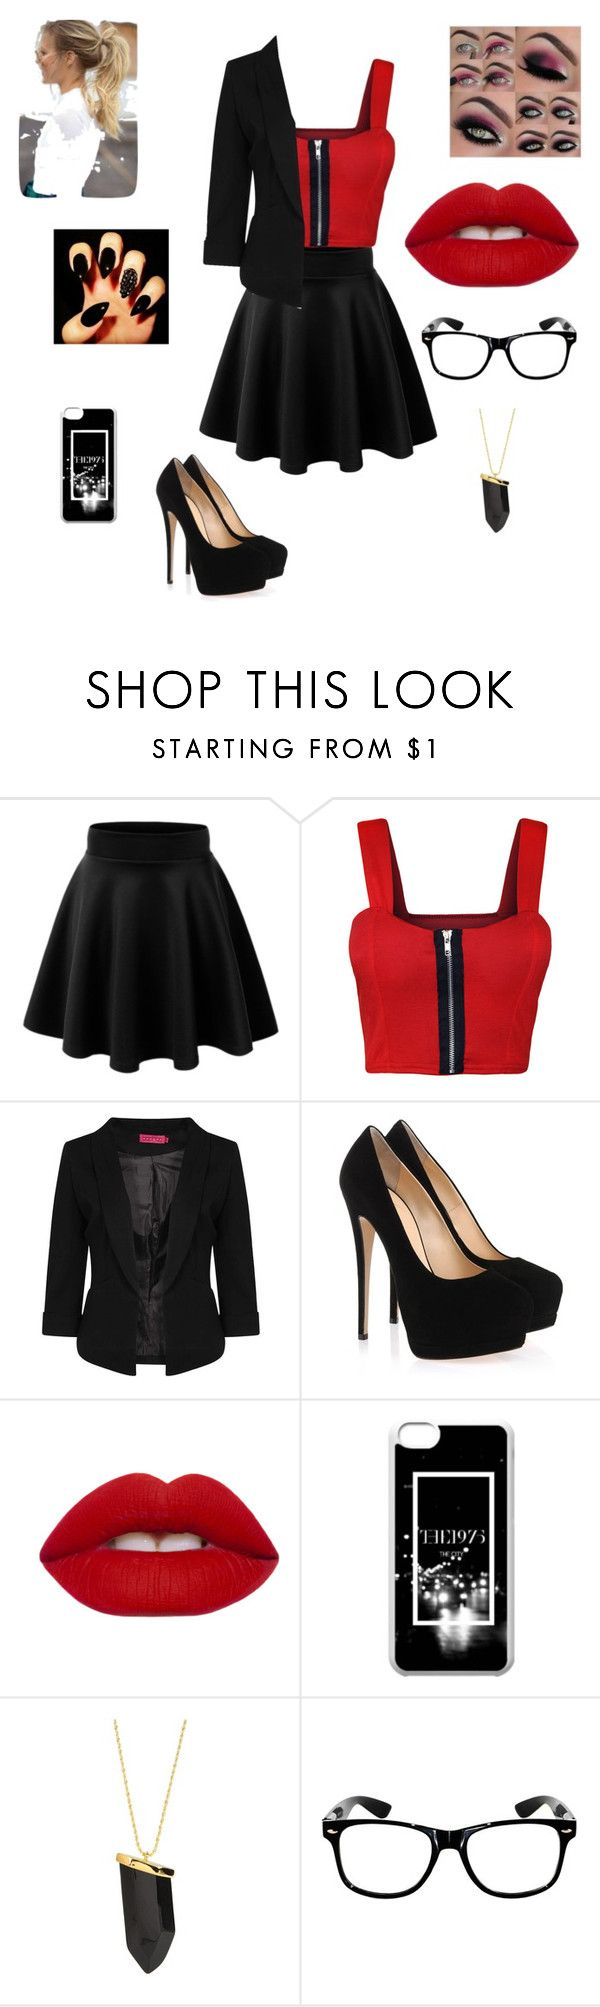 """""""❤️⚫️"""" by samhernandez14 on Polyvore featuring WearAll, Boohoo, Giuseppe Zanotti, Lime Crime and Kenneth Jay Lane"""